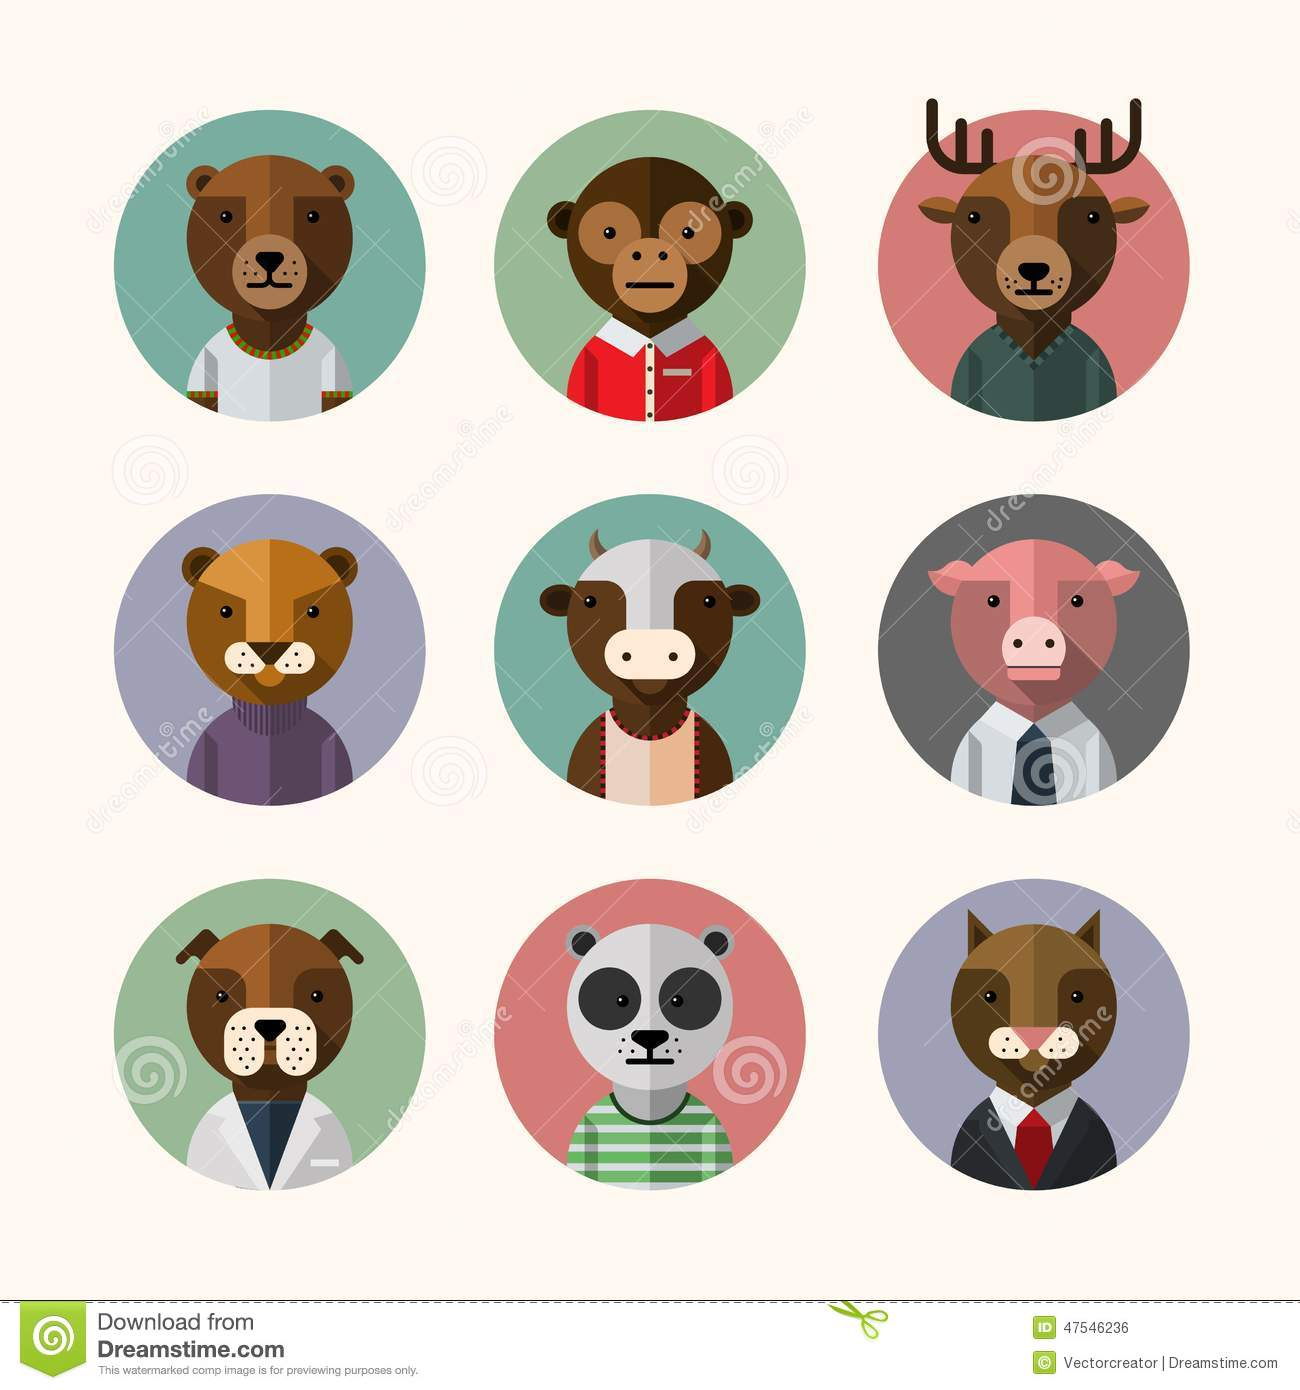 Avatar 2 Animals: Flat Design Style Animal Avatar Icon Set Stock Vector